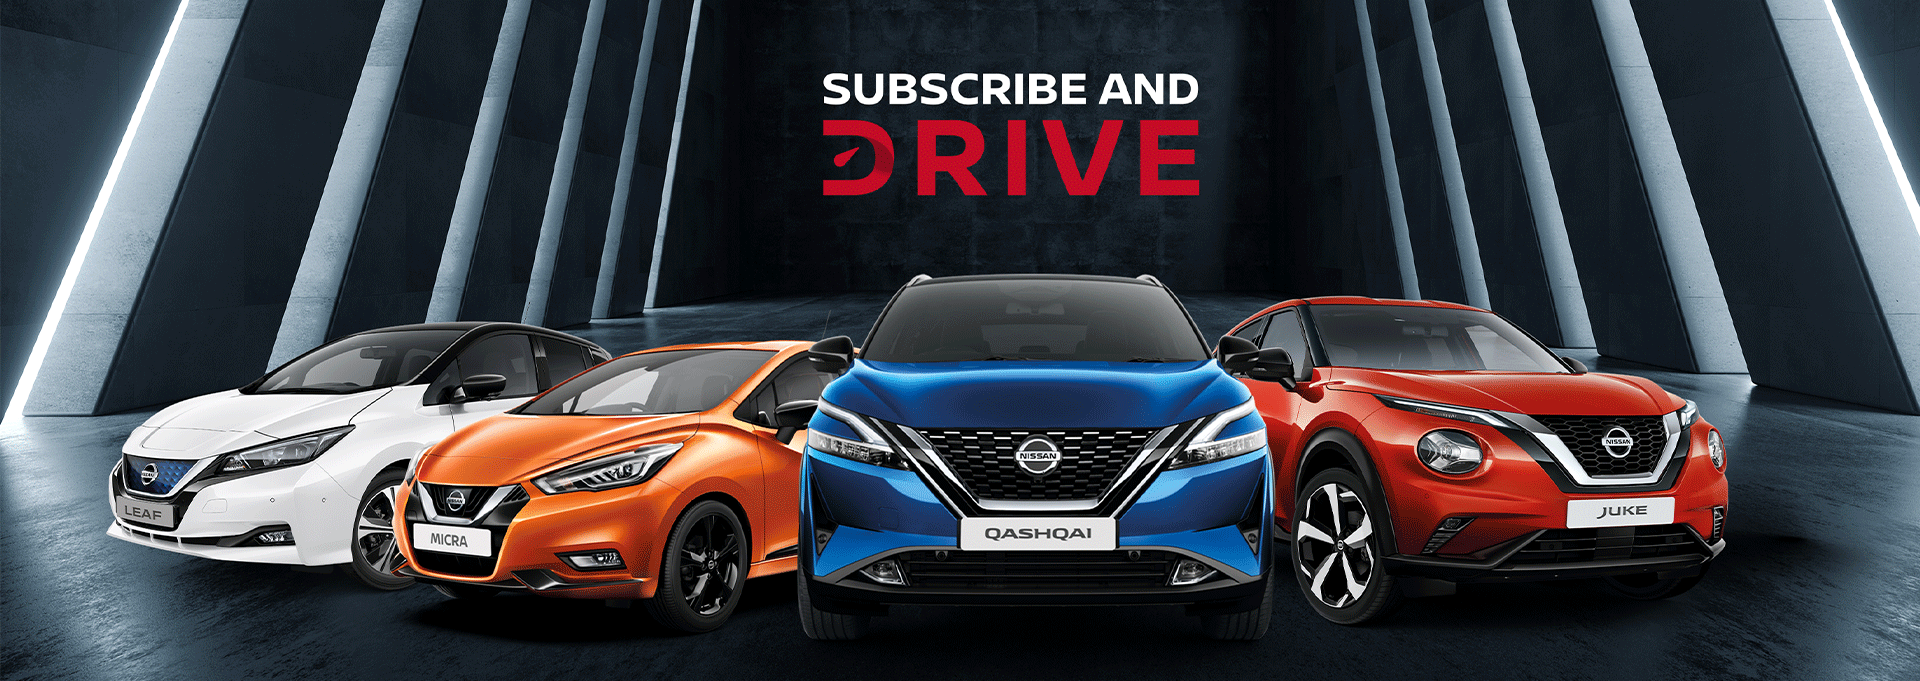 212 SUBSCRIBE AND DRIVE OFFER